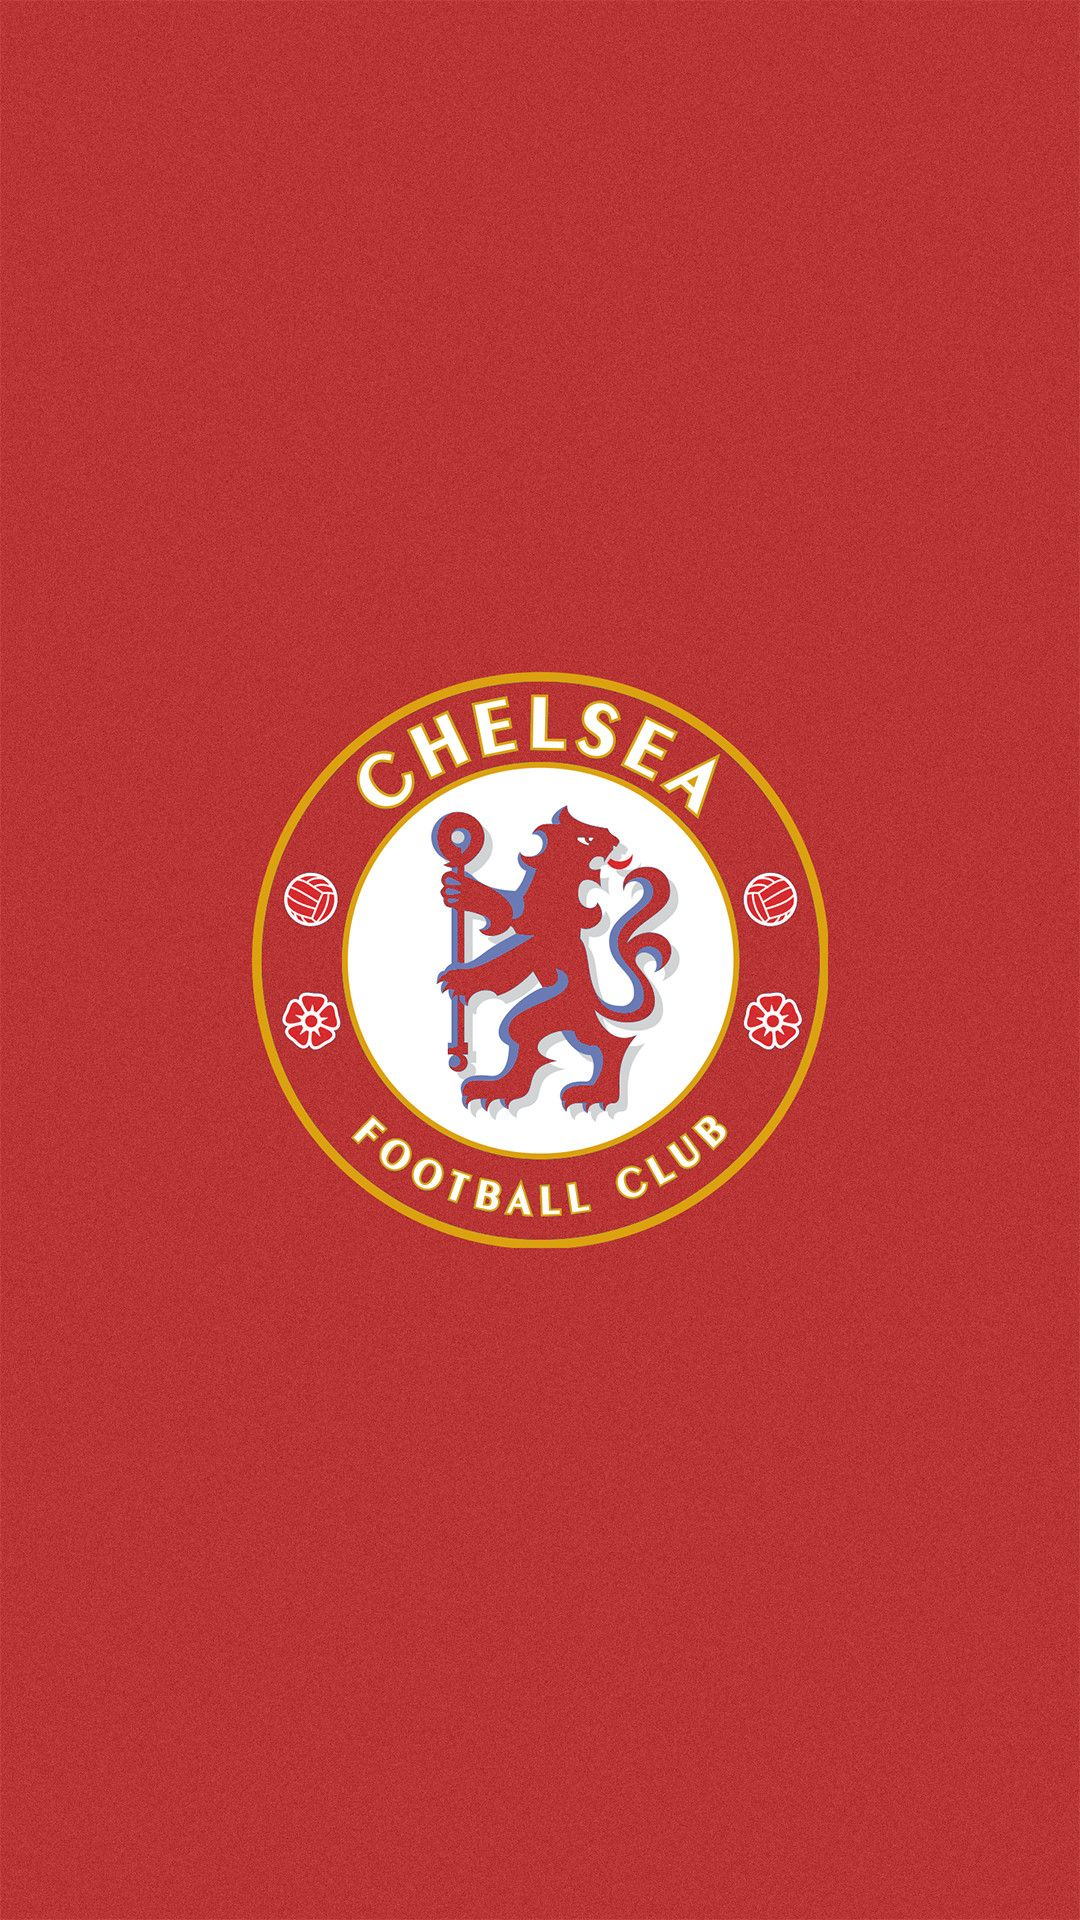 49ers Background Image Chelsea wallpapers